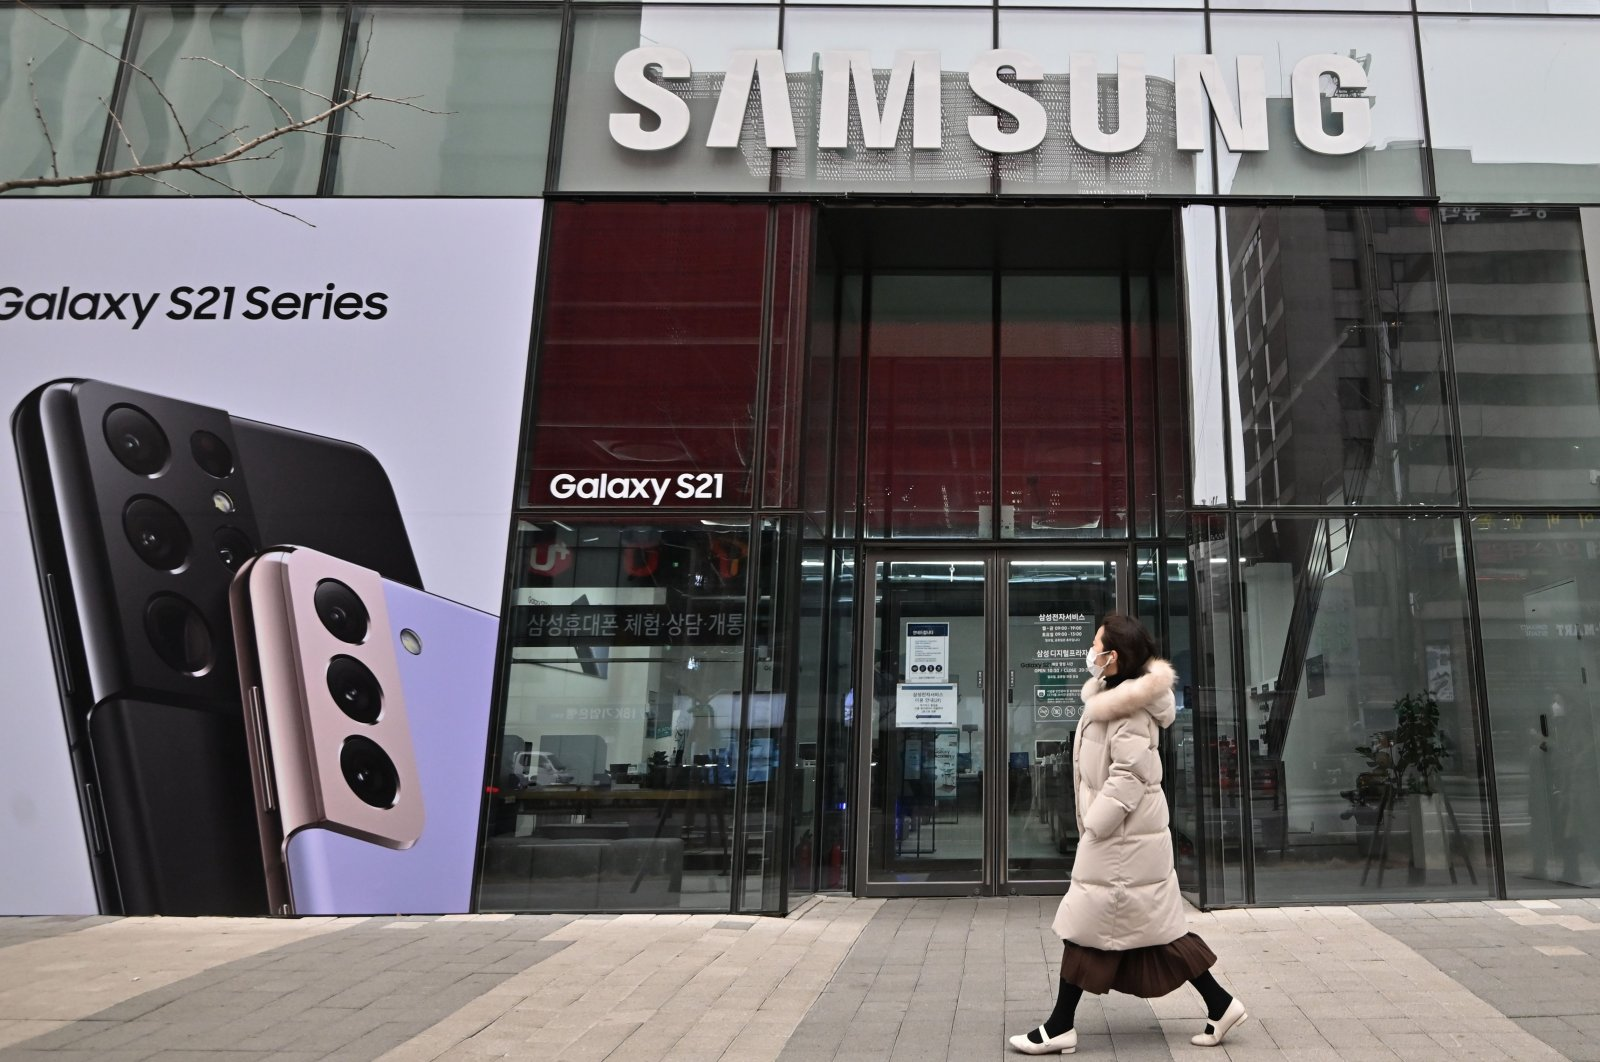 A woman walks past an advertisement for the Samsung Galaxy S21 smartphone at a Samsung Electronics store in Seoul, South Korea, Jan. 28, 2021. (Reuters Photo)